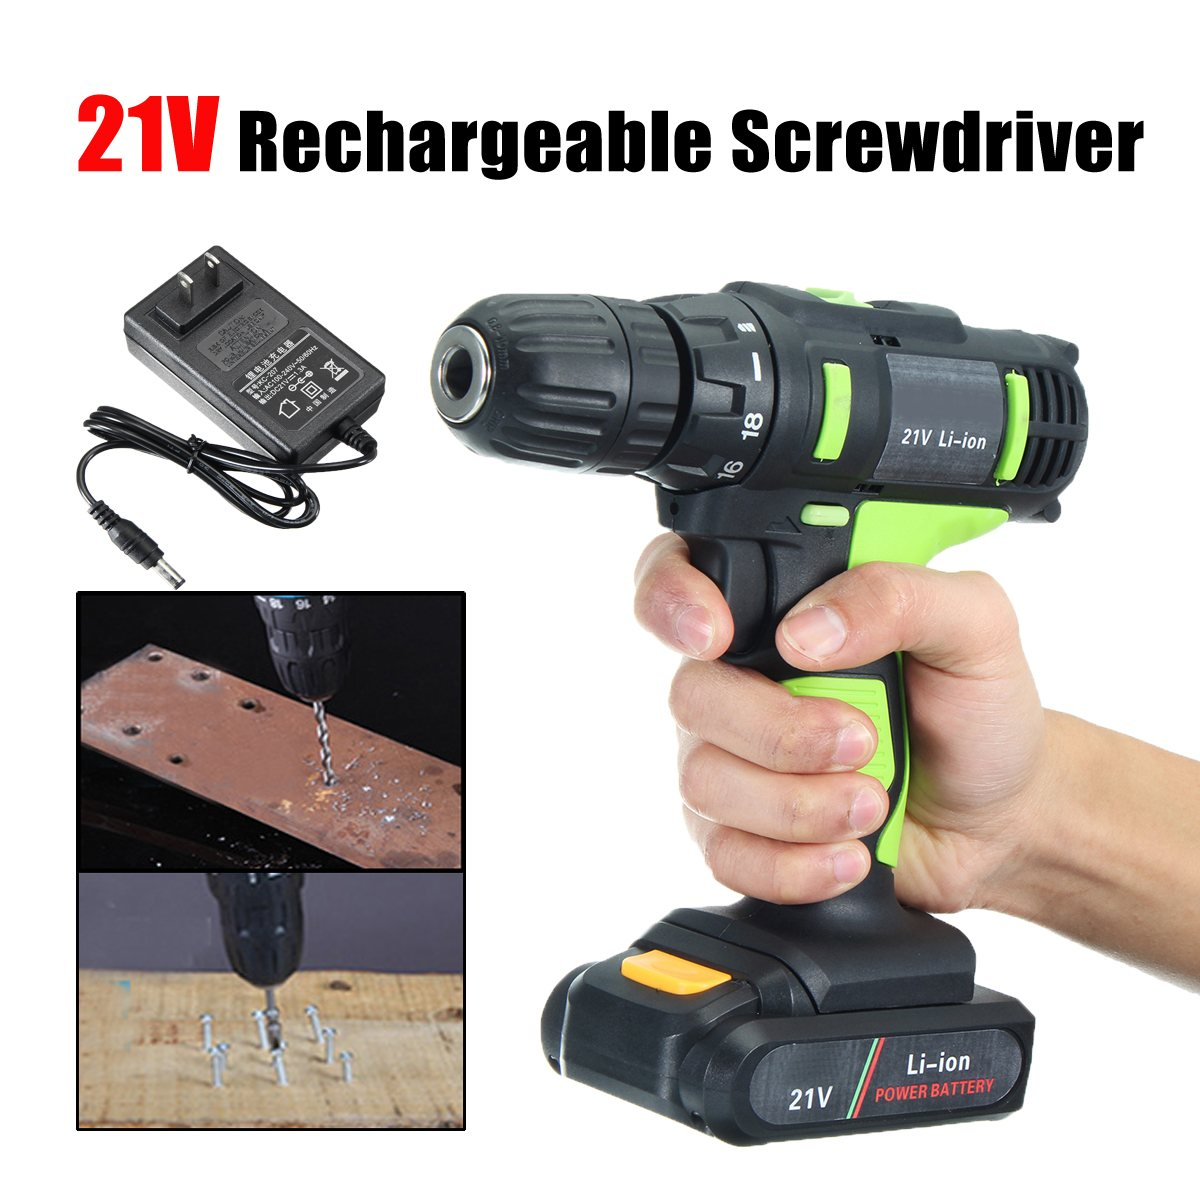 21V Mini Electric Hammer Rechargeable Wireless Electric Drill Bit Multifunctional Electric Screwdriver Torque drill +2 Batteries free shipping brand proskit upt 32007d frequency modulated electric screwdriver 2 electric screwdriver bit 900 1300rpm tools